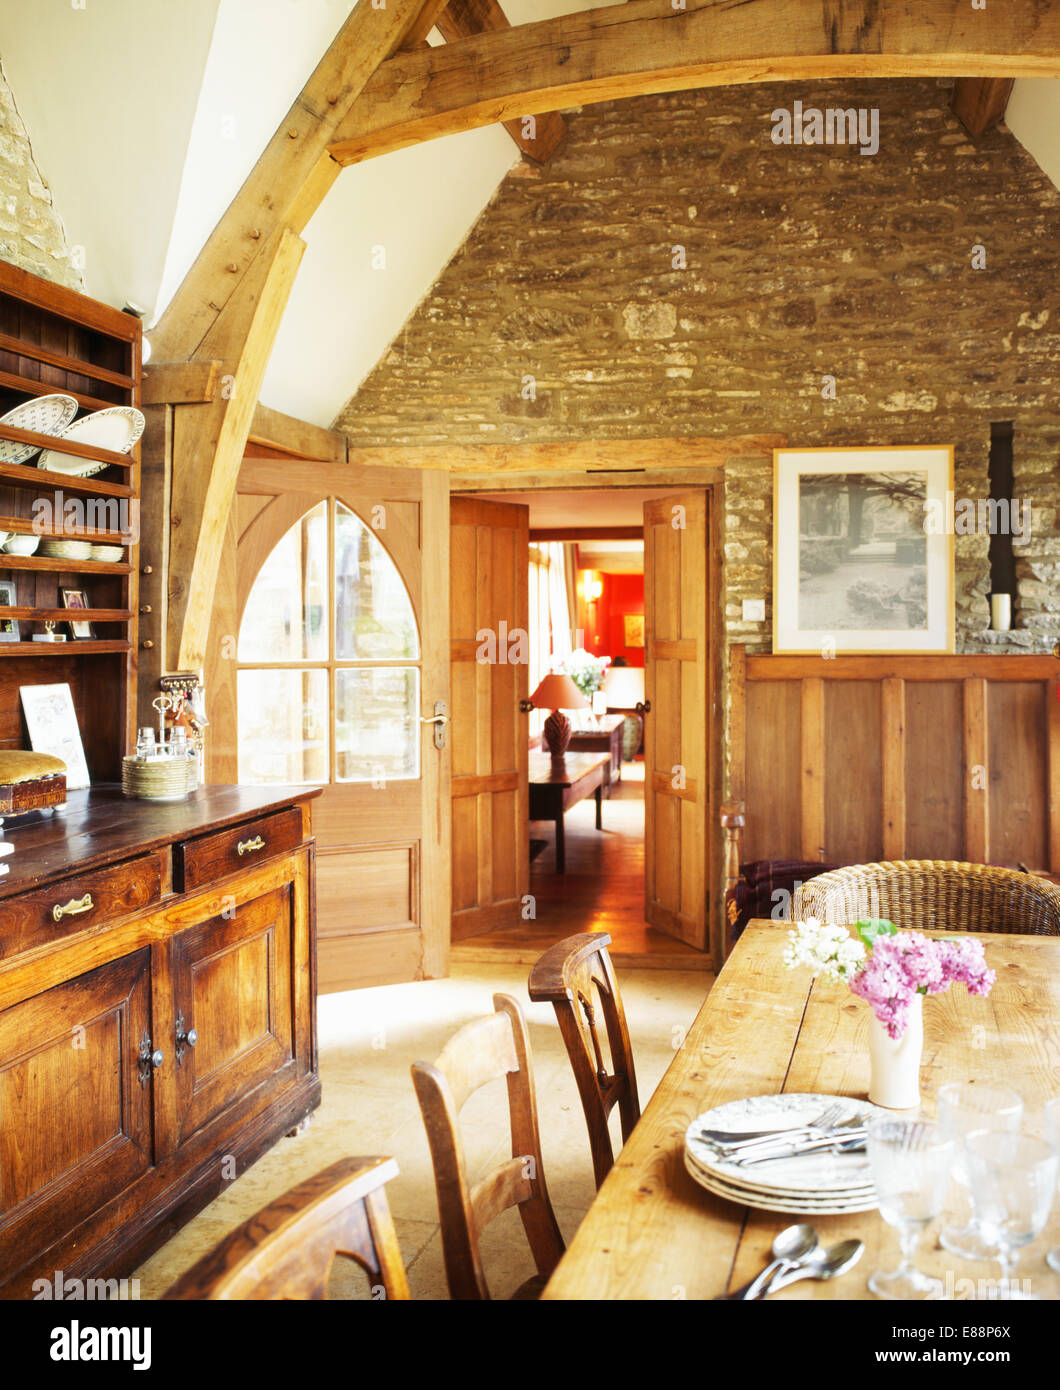 Uncategorized Exposed Wooden Beams exposed stone wall and large wooden beams in barn conversion dining room with antique dresser pine table